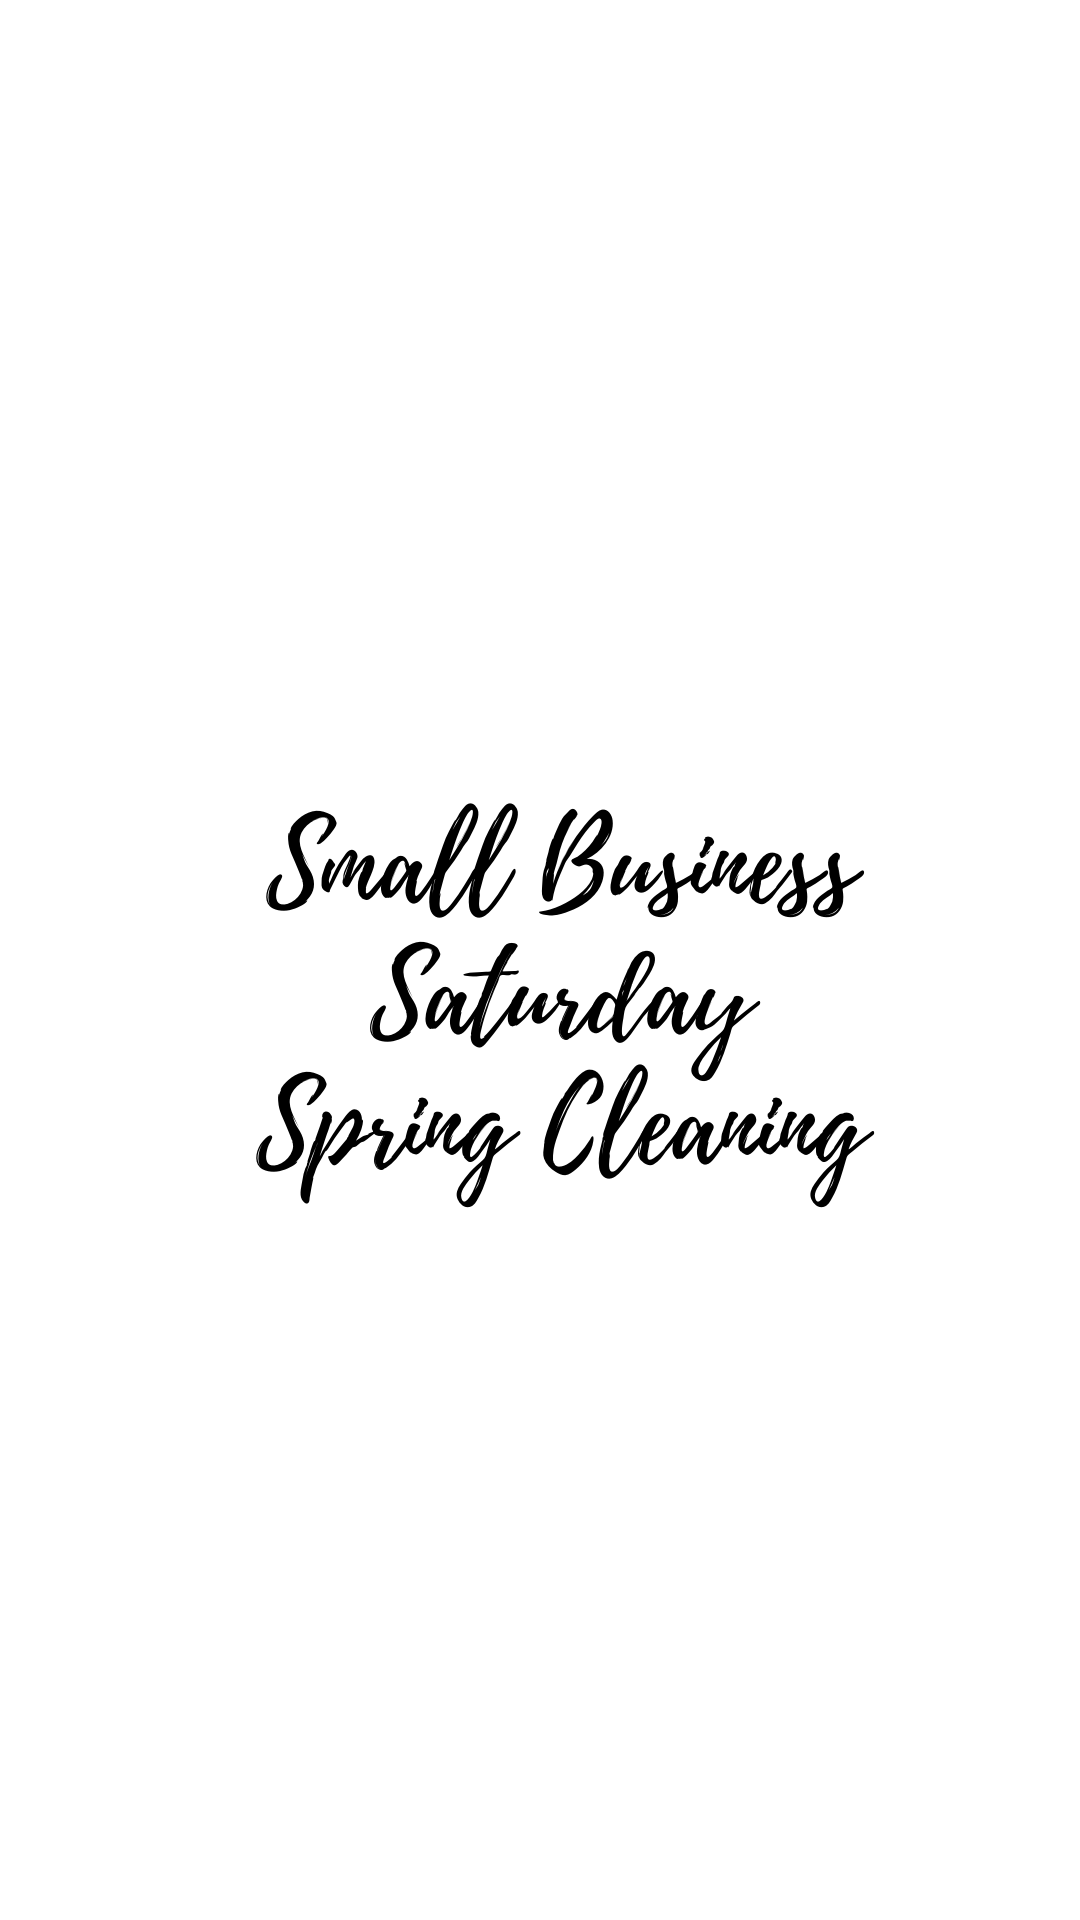 Small Business Saturday: Spring Cleaning